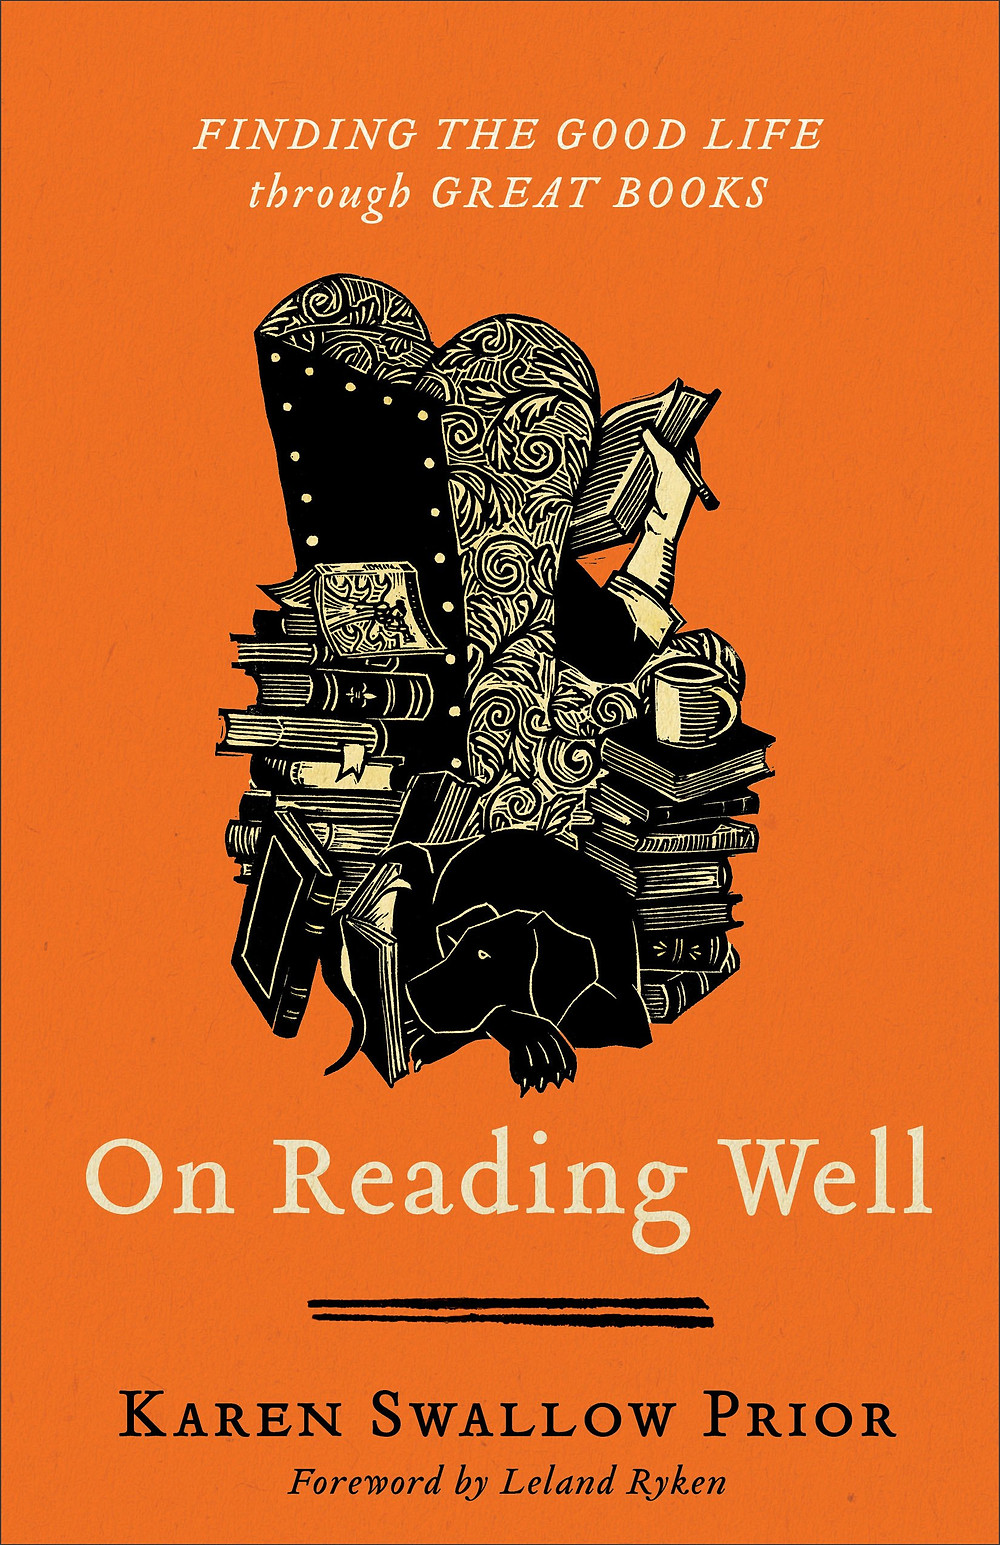 On Reading Well: Finding the Good Life through Great Books by Karen Swallow Prior